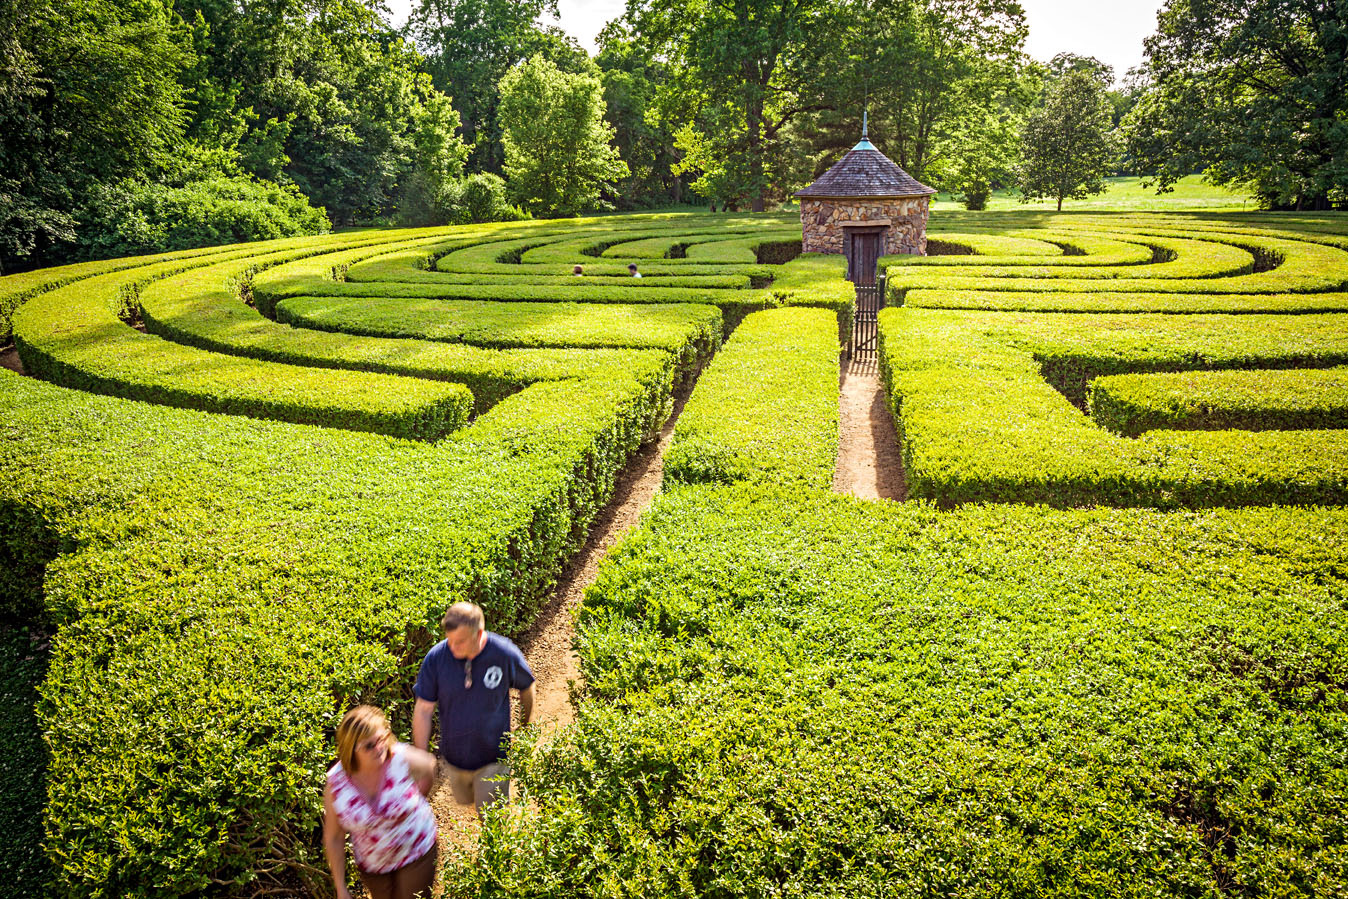 Symbolizing life's journey, only a single path leads to the center of the free-admission Harmonist Labyrinth.